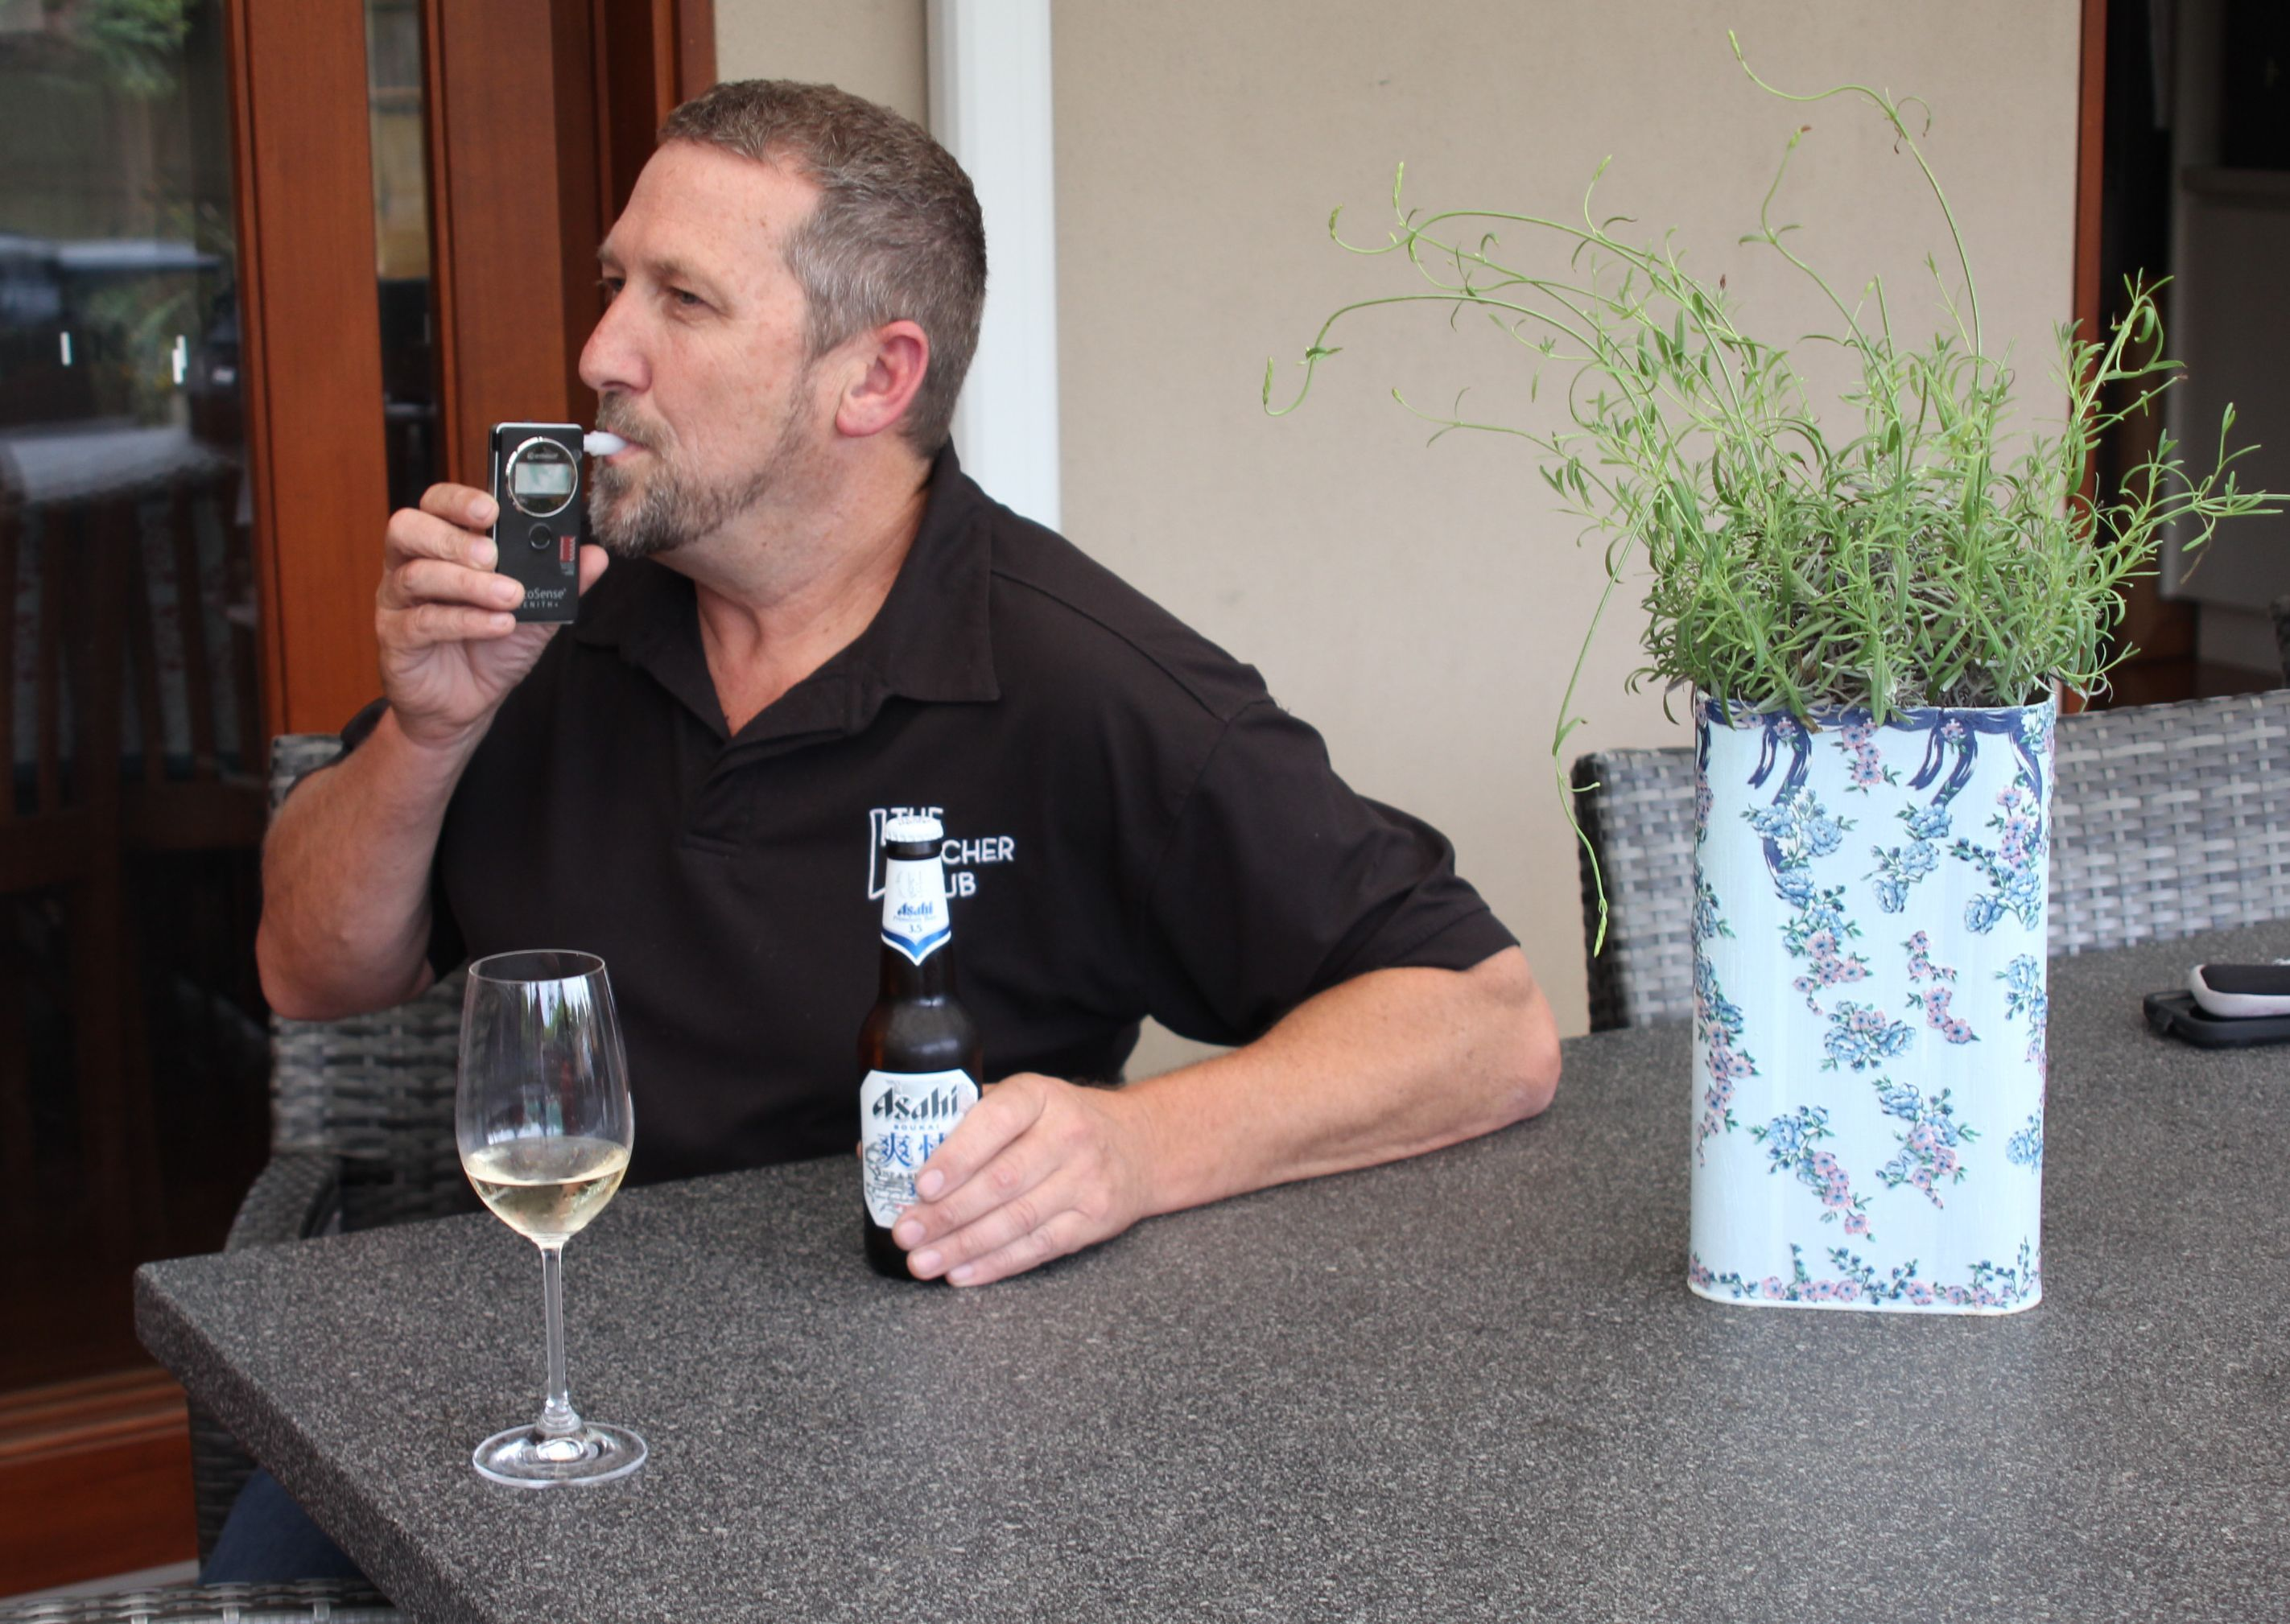 Peter Robinson tests his blood alcohol level (BAC) before deciding if he should have another beer using one of his personal breathalysers.